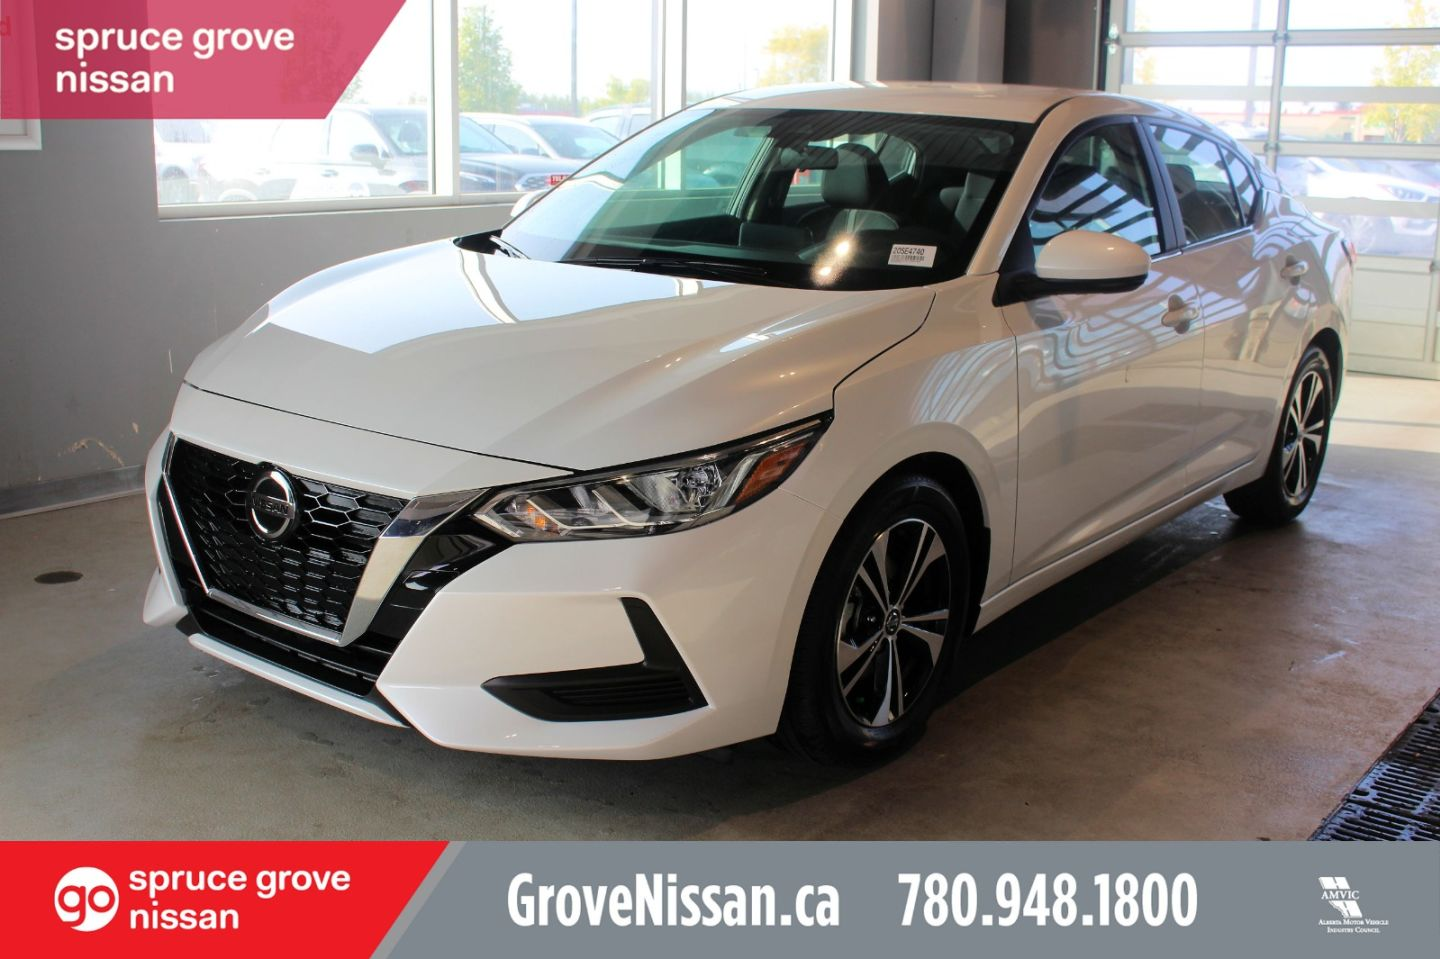 2020 Nissan Sentra SV for sale in Spruce Grove, Alberta